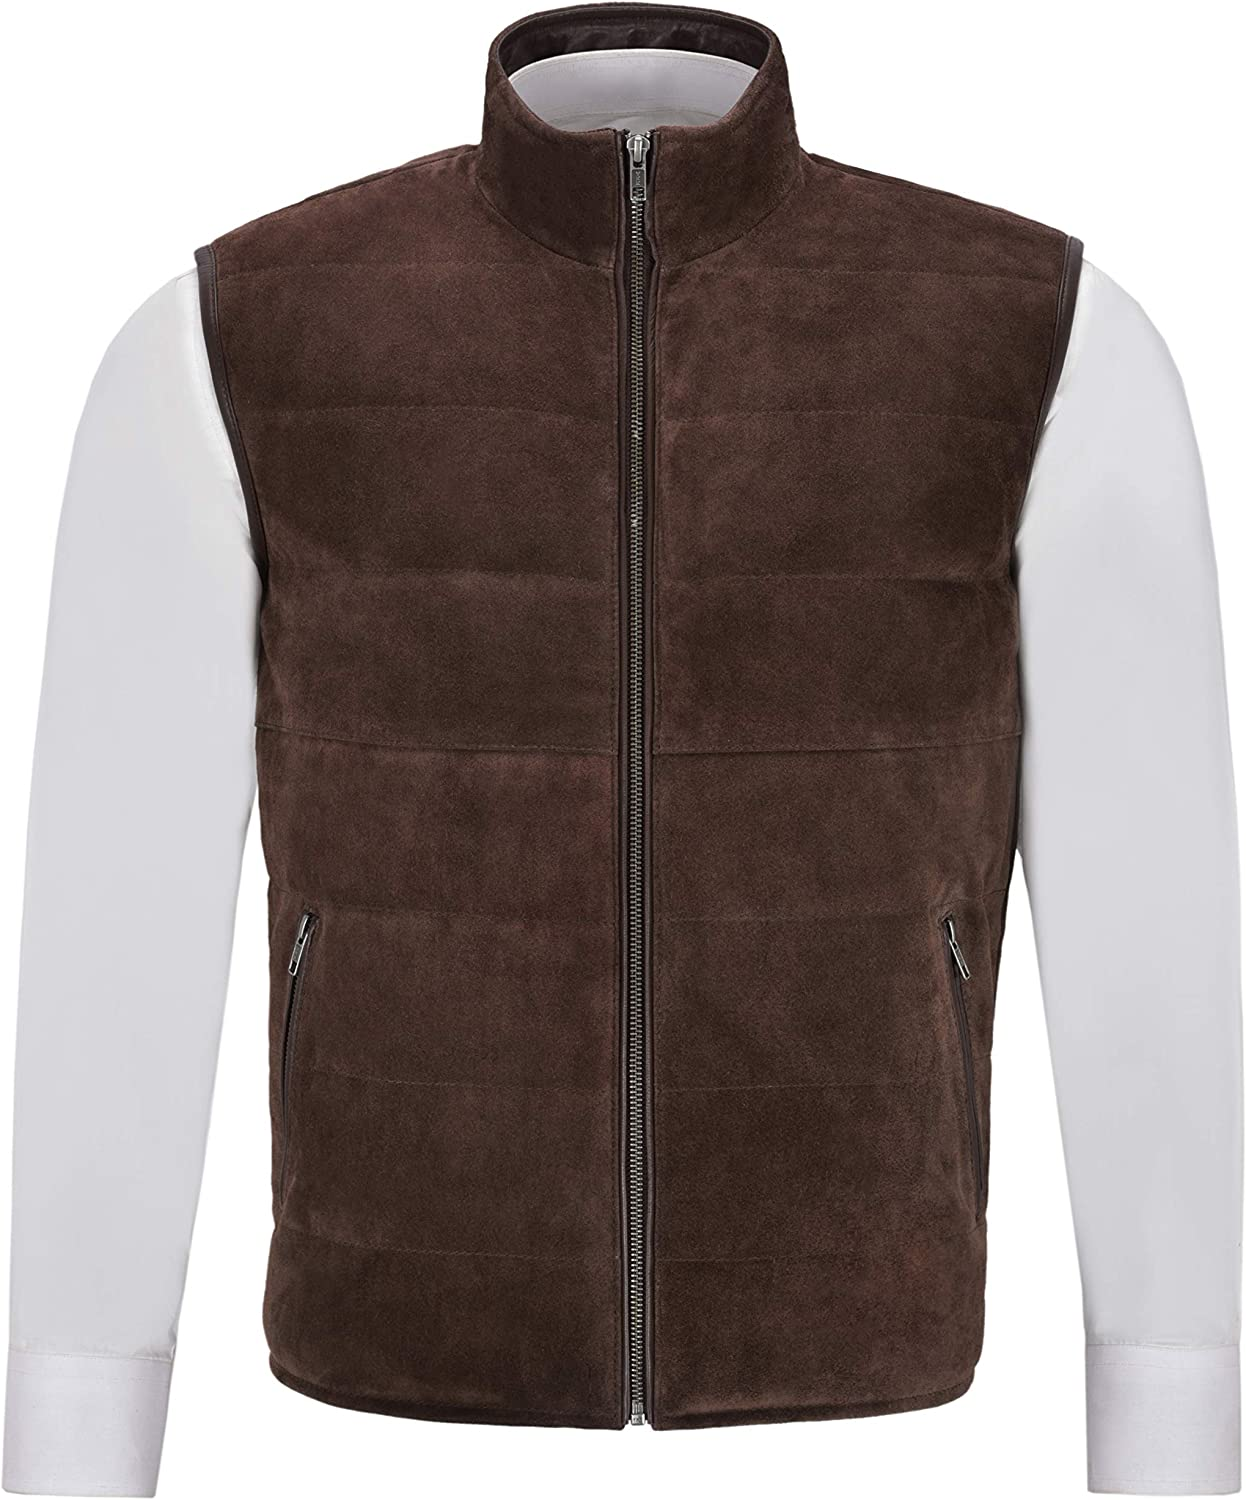 Men's Quilted Sale Leather Waistcoat Brown Fashion Max 43% OFF Real Suede